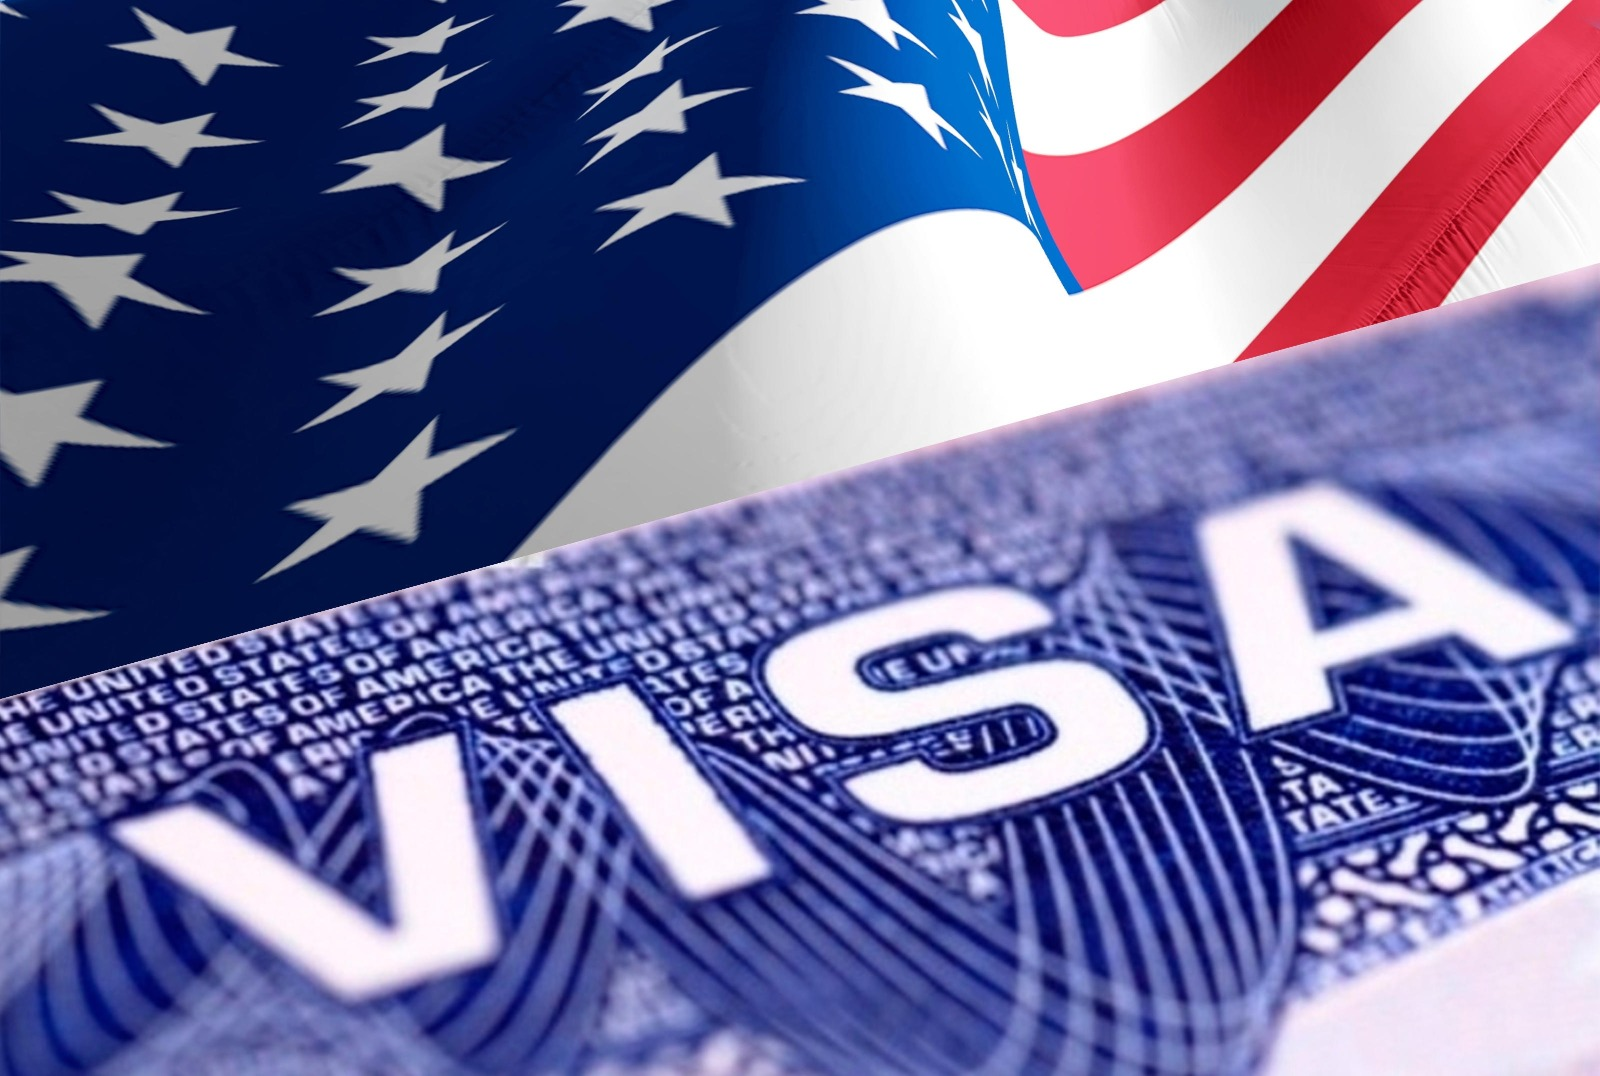 ACE THE US STUDENT VISA INTERVIEW